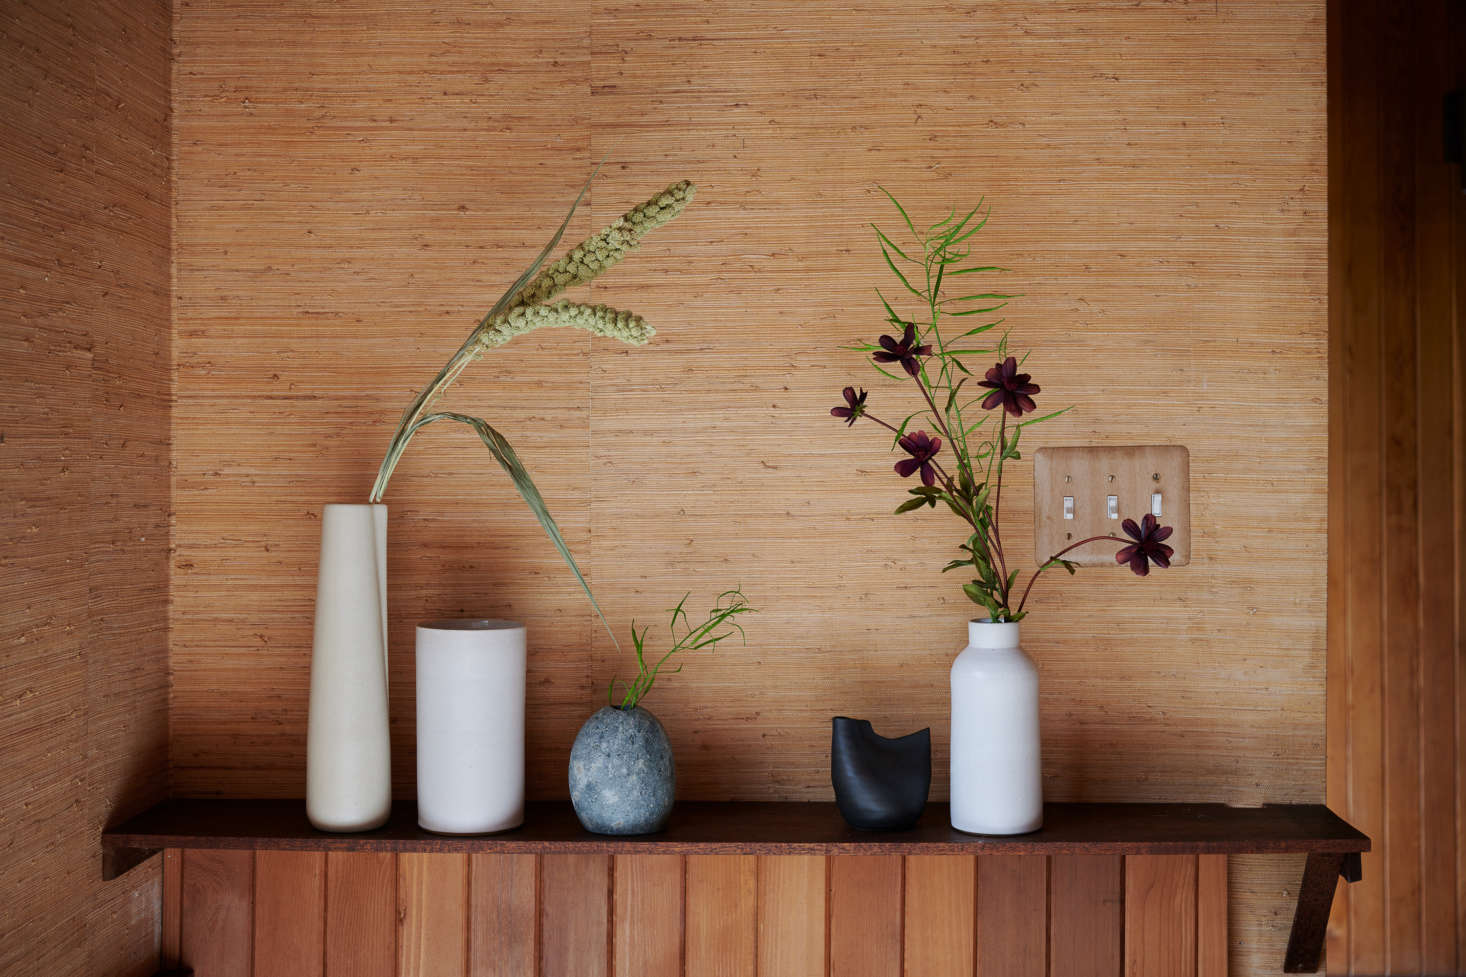 Bloomist offers an array of handmade, organically shaped vases that are every bit as thoughtful as blooms and stems they hold. From left to right: the Off-White Novah Pitcher ($45, pictured with Dried Spray Millet, $); Tracie Hervy's White Stoneware Tall Cylinder Vase ($src=